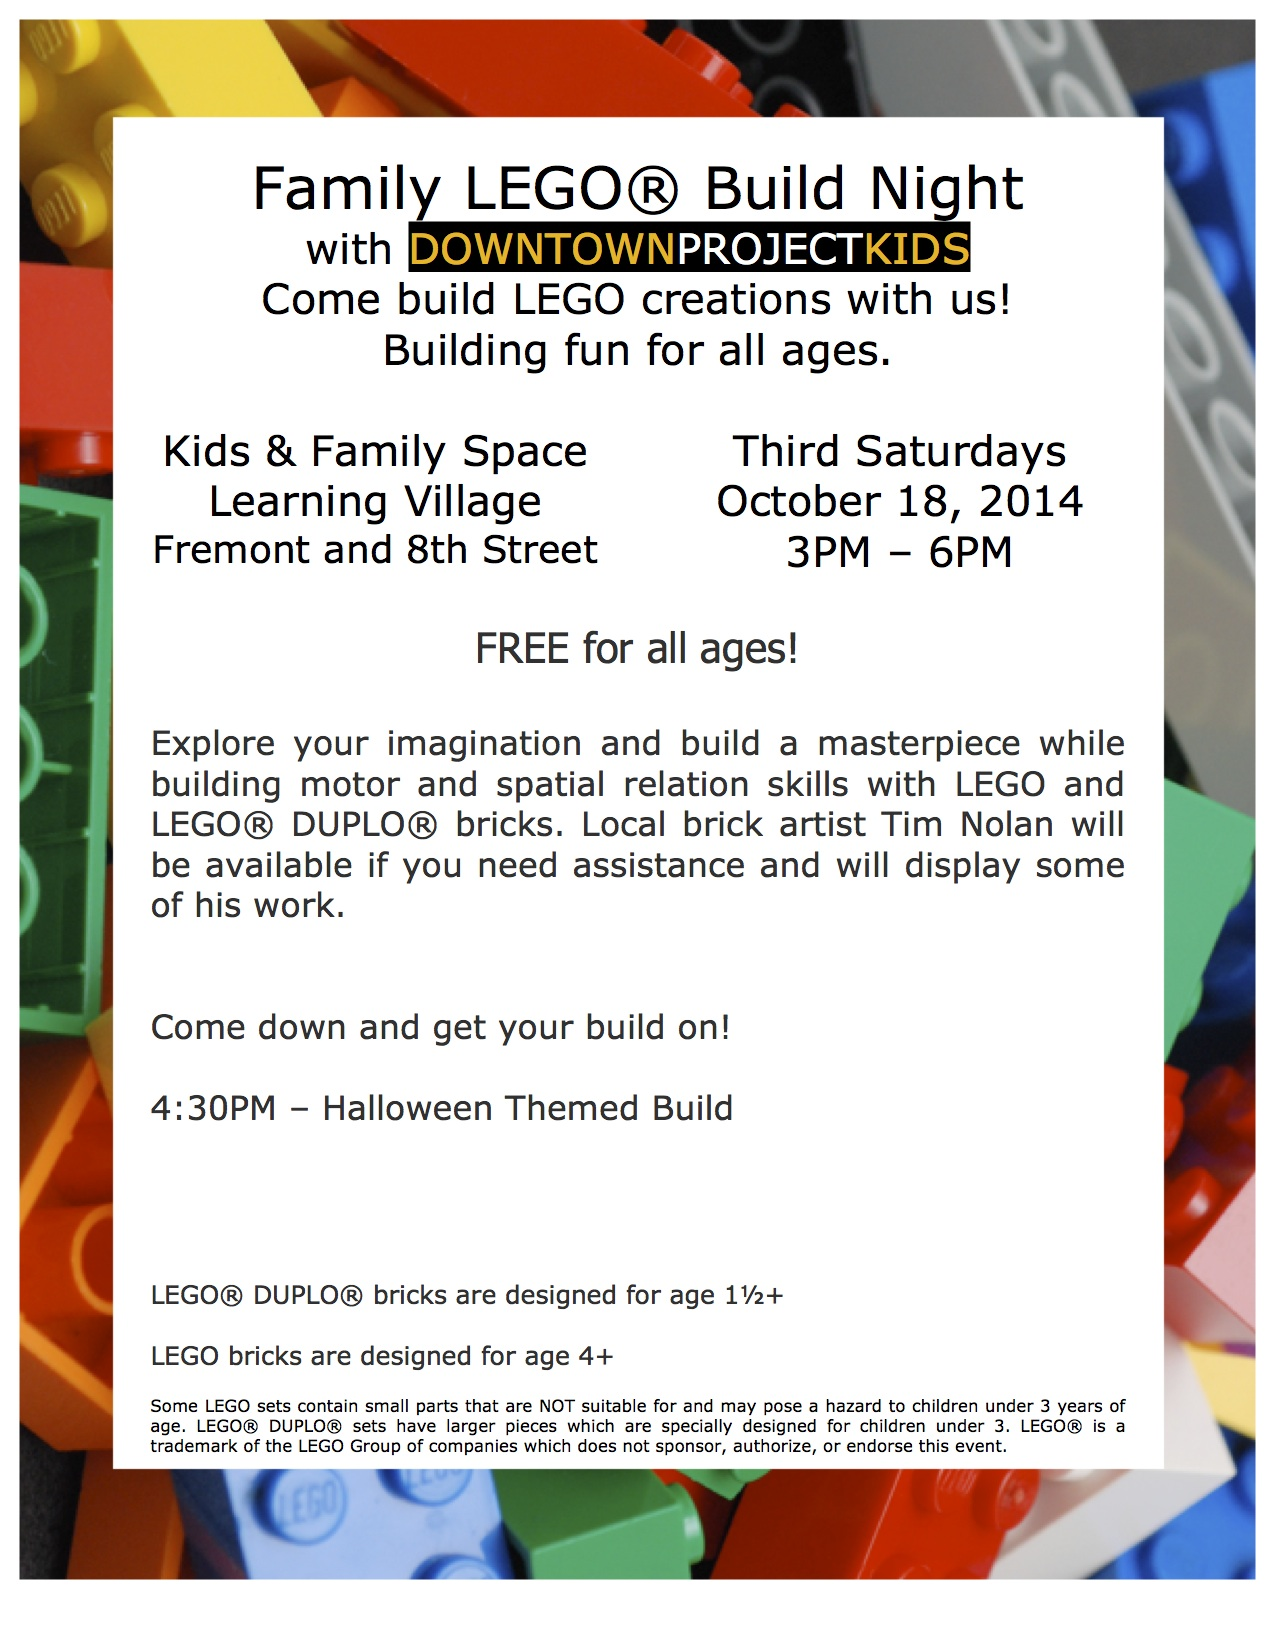 Family LEGO速 Build Night 10/18/14